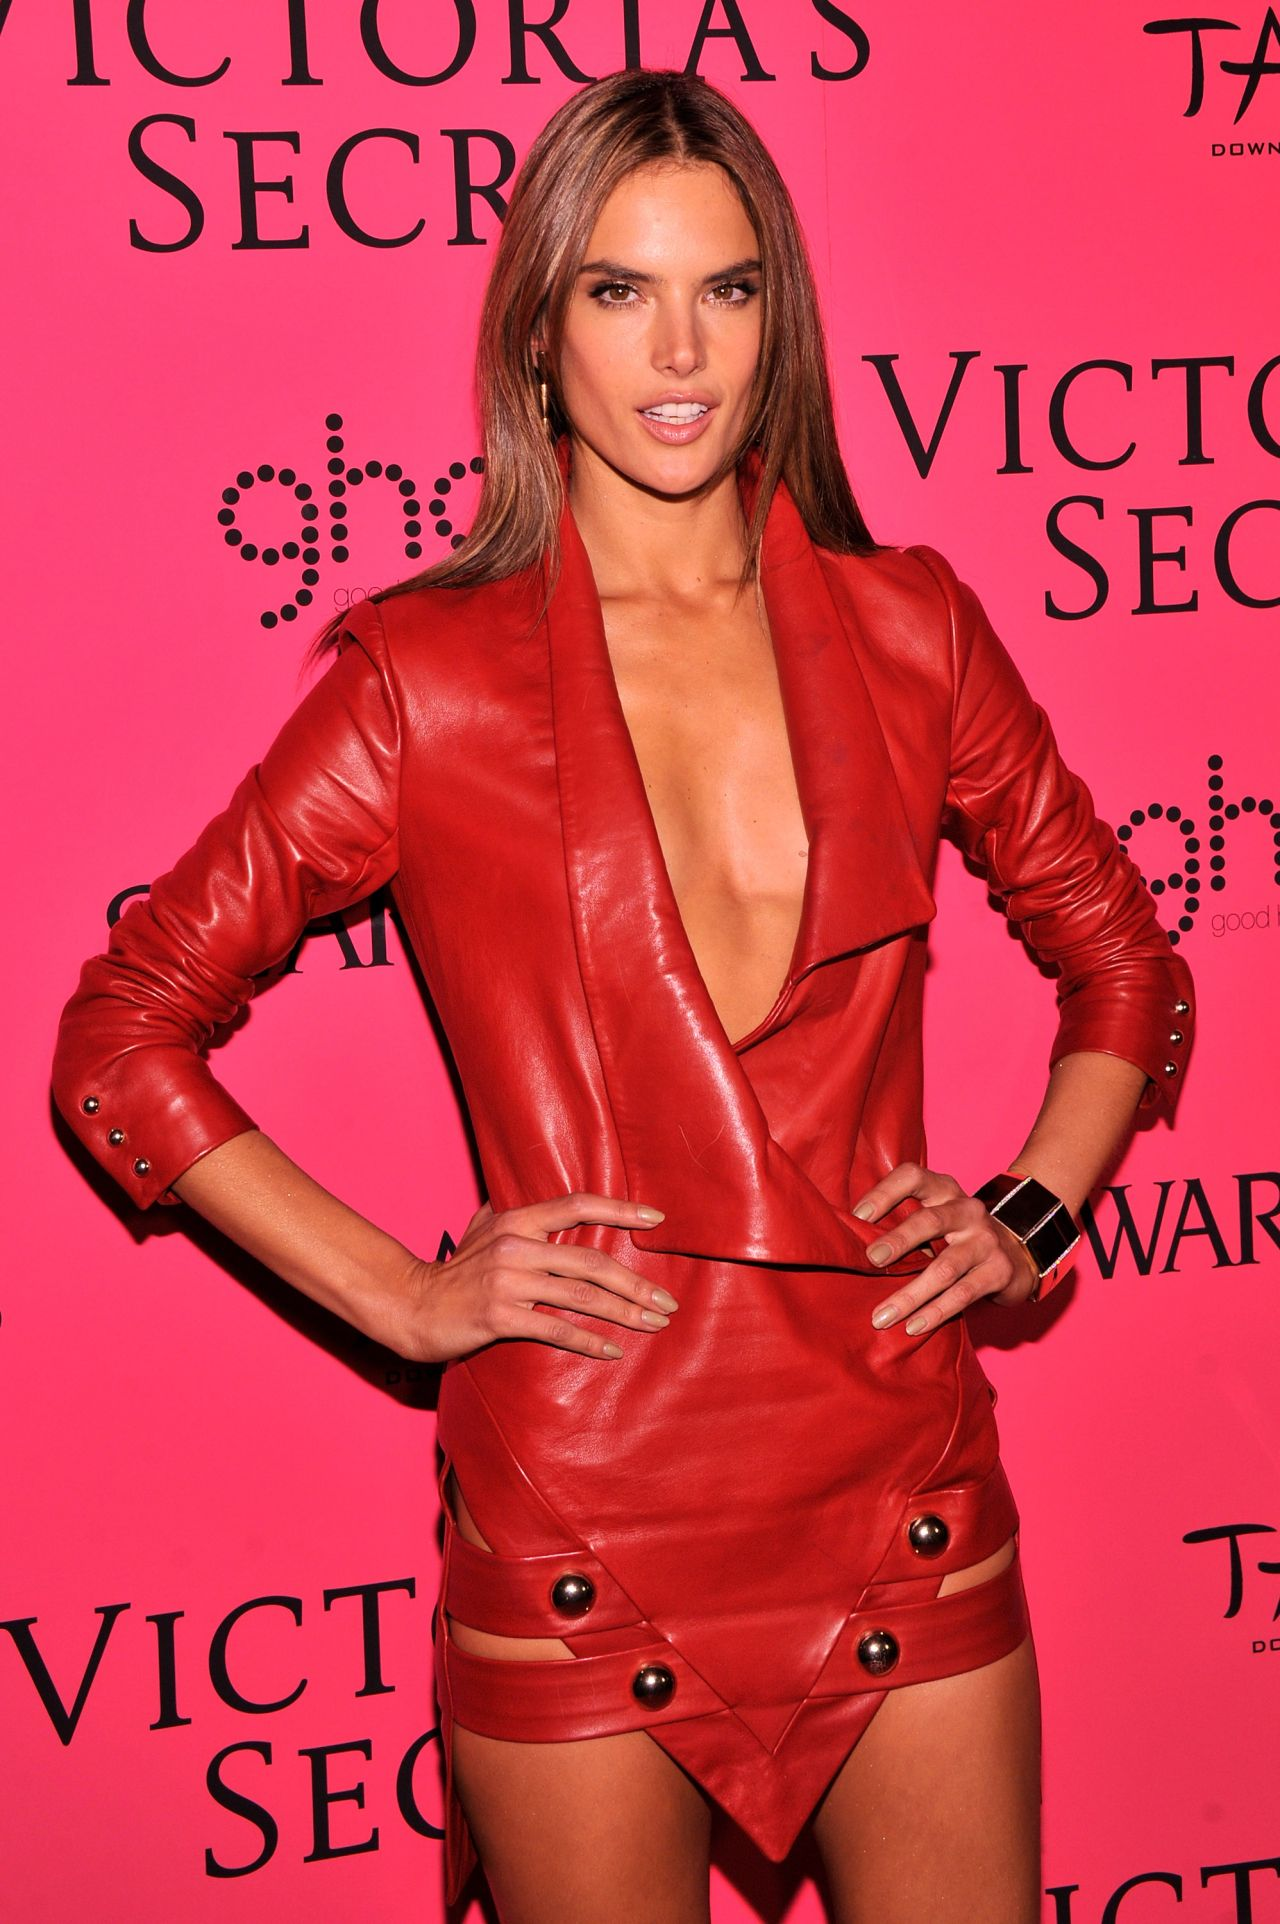 Alessandra Ambrosio in Red on Red Carpet - Victoria